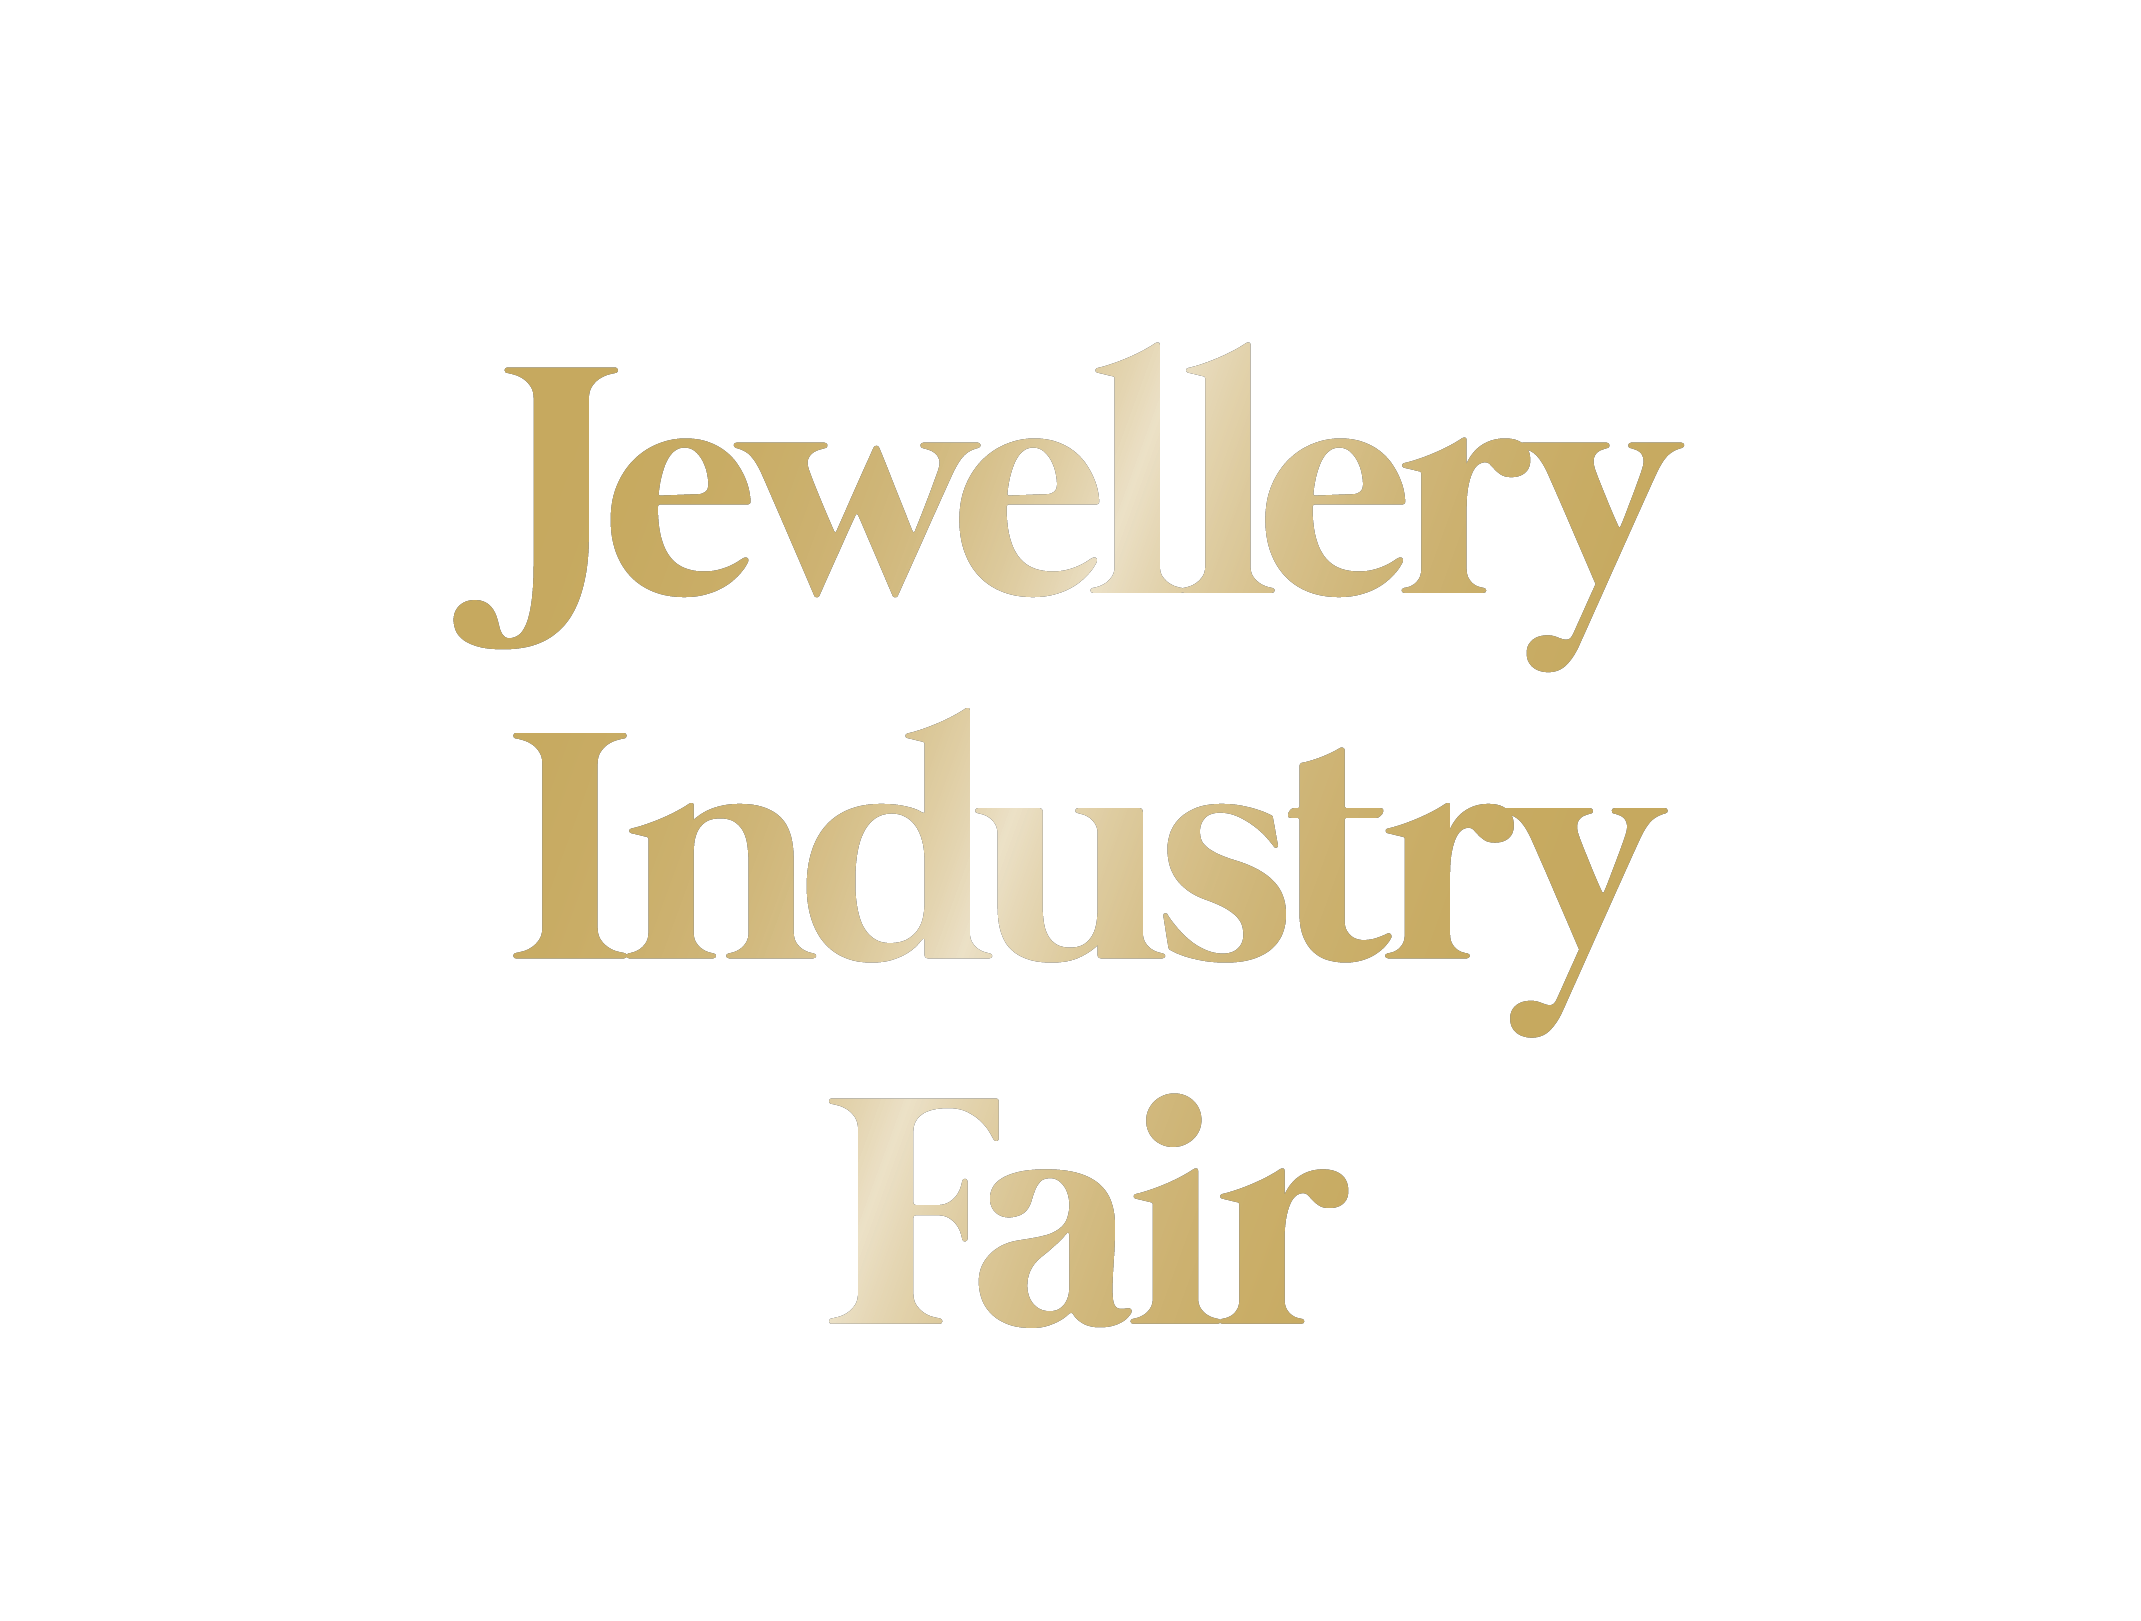 Jewellery Industry Fair